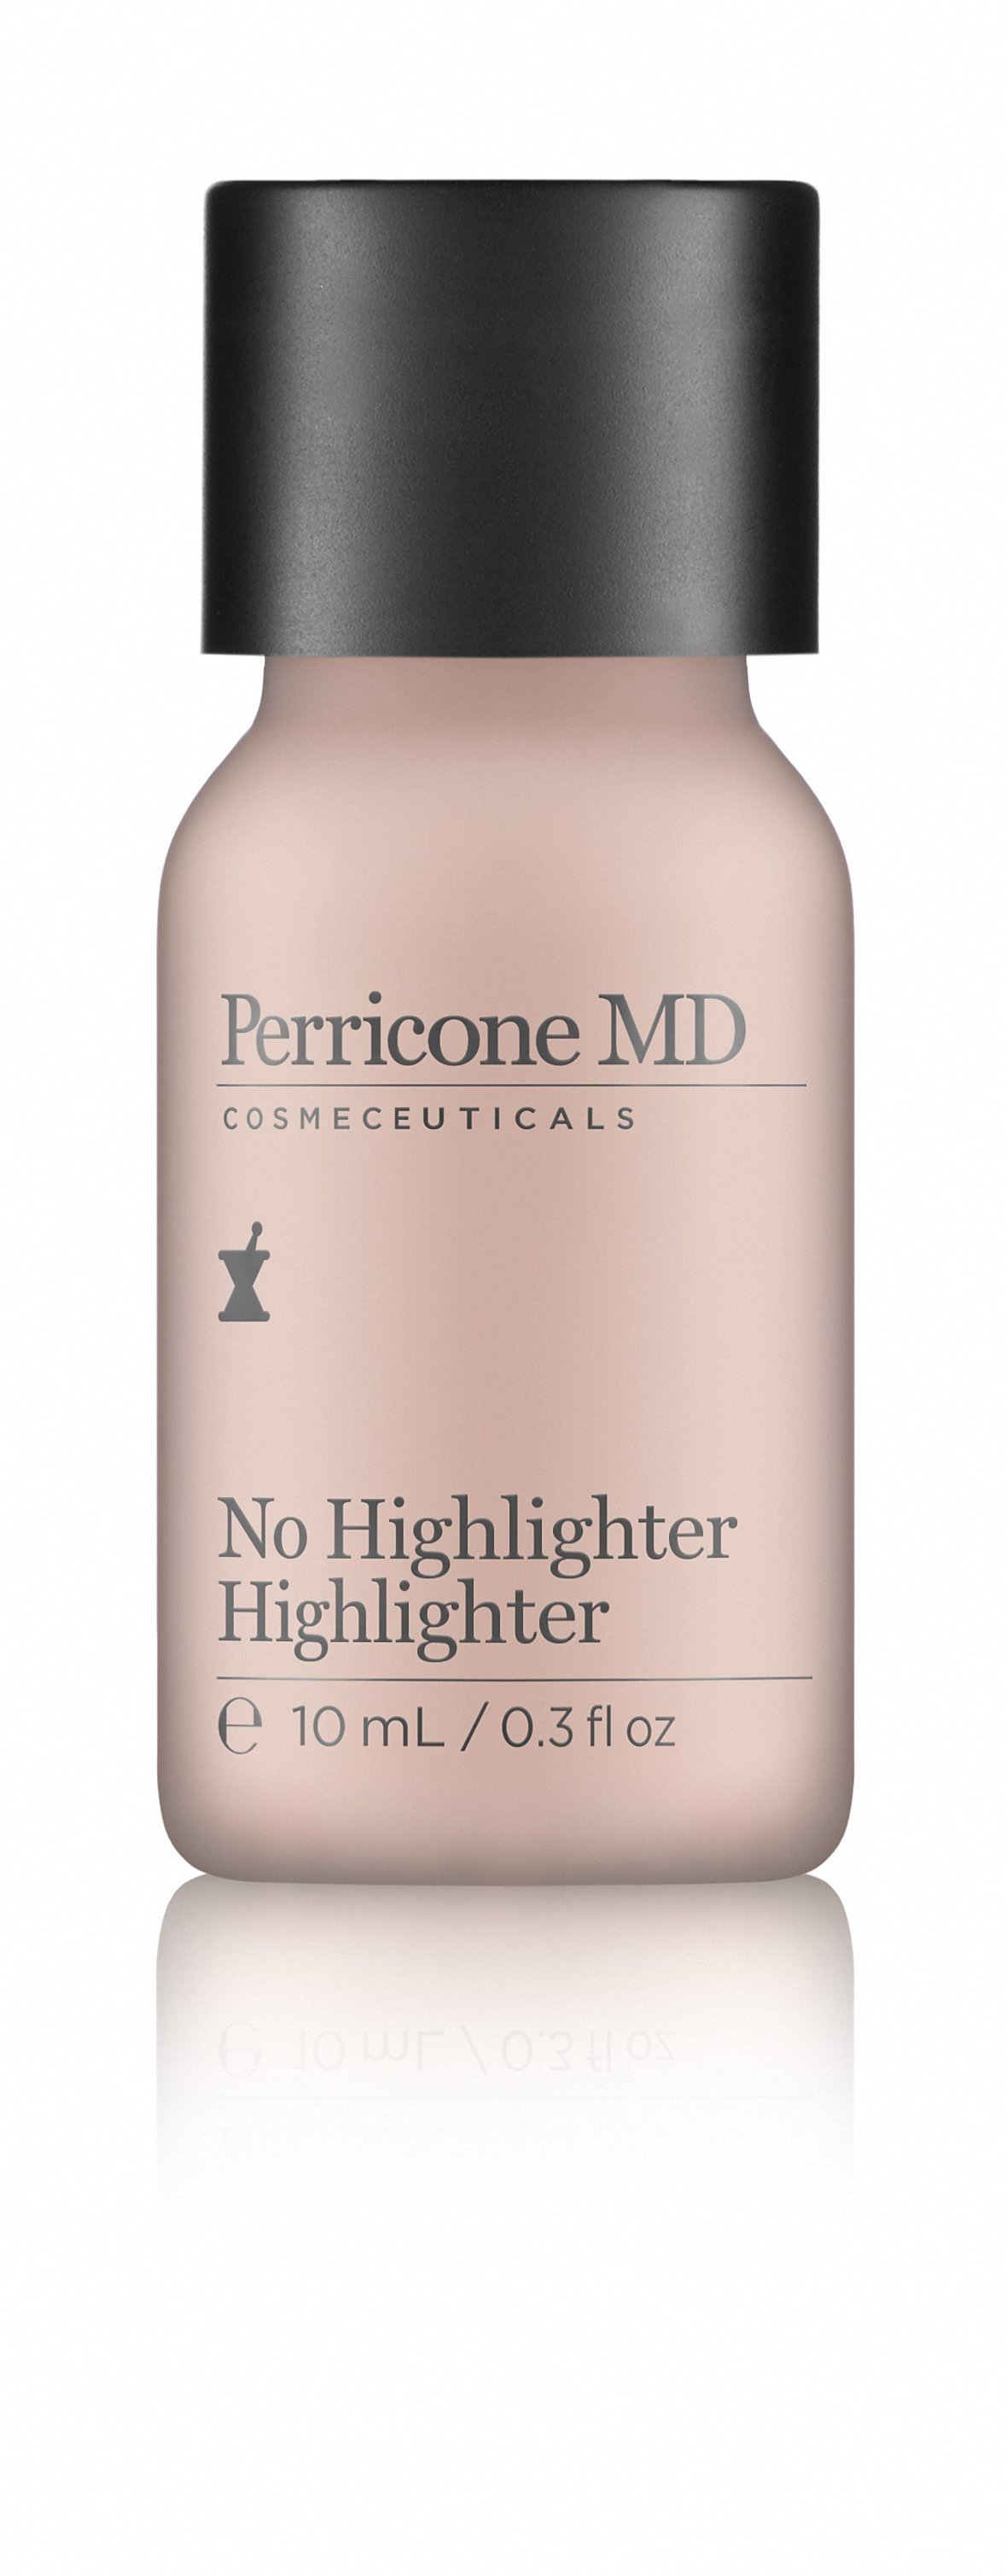 No Highlighter Highlighter - PERRICONE MD